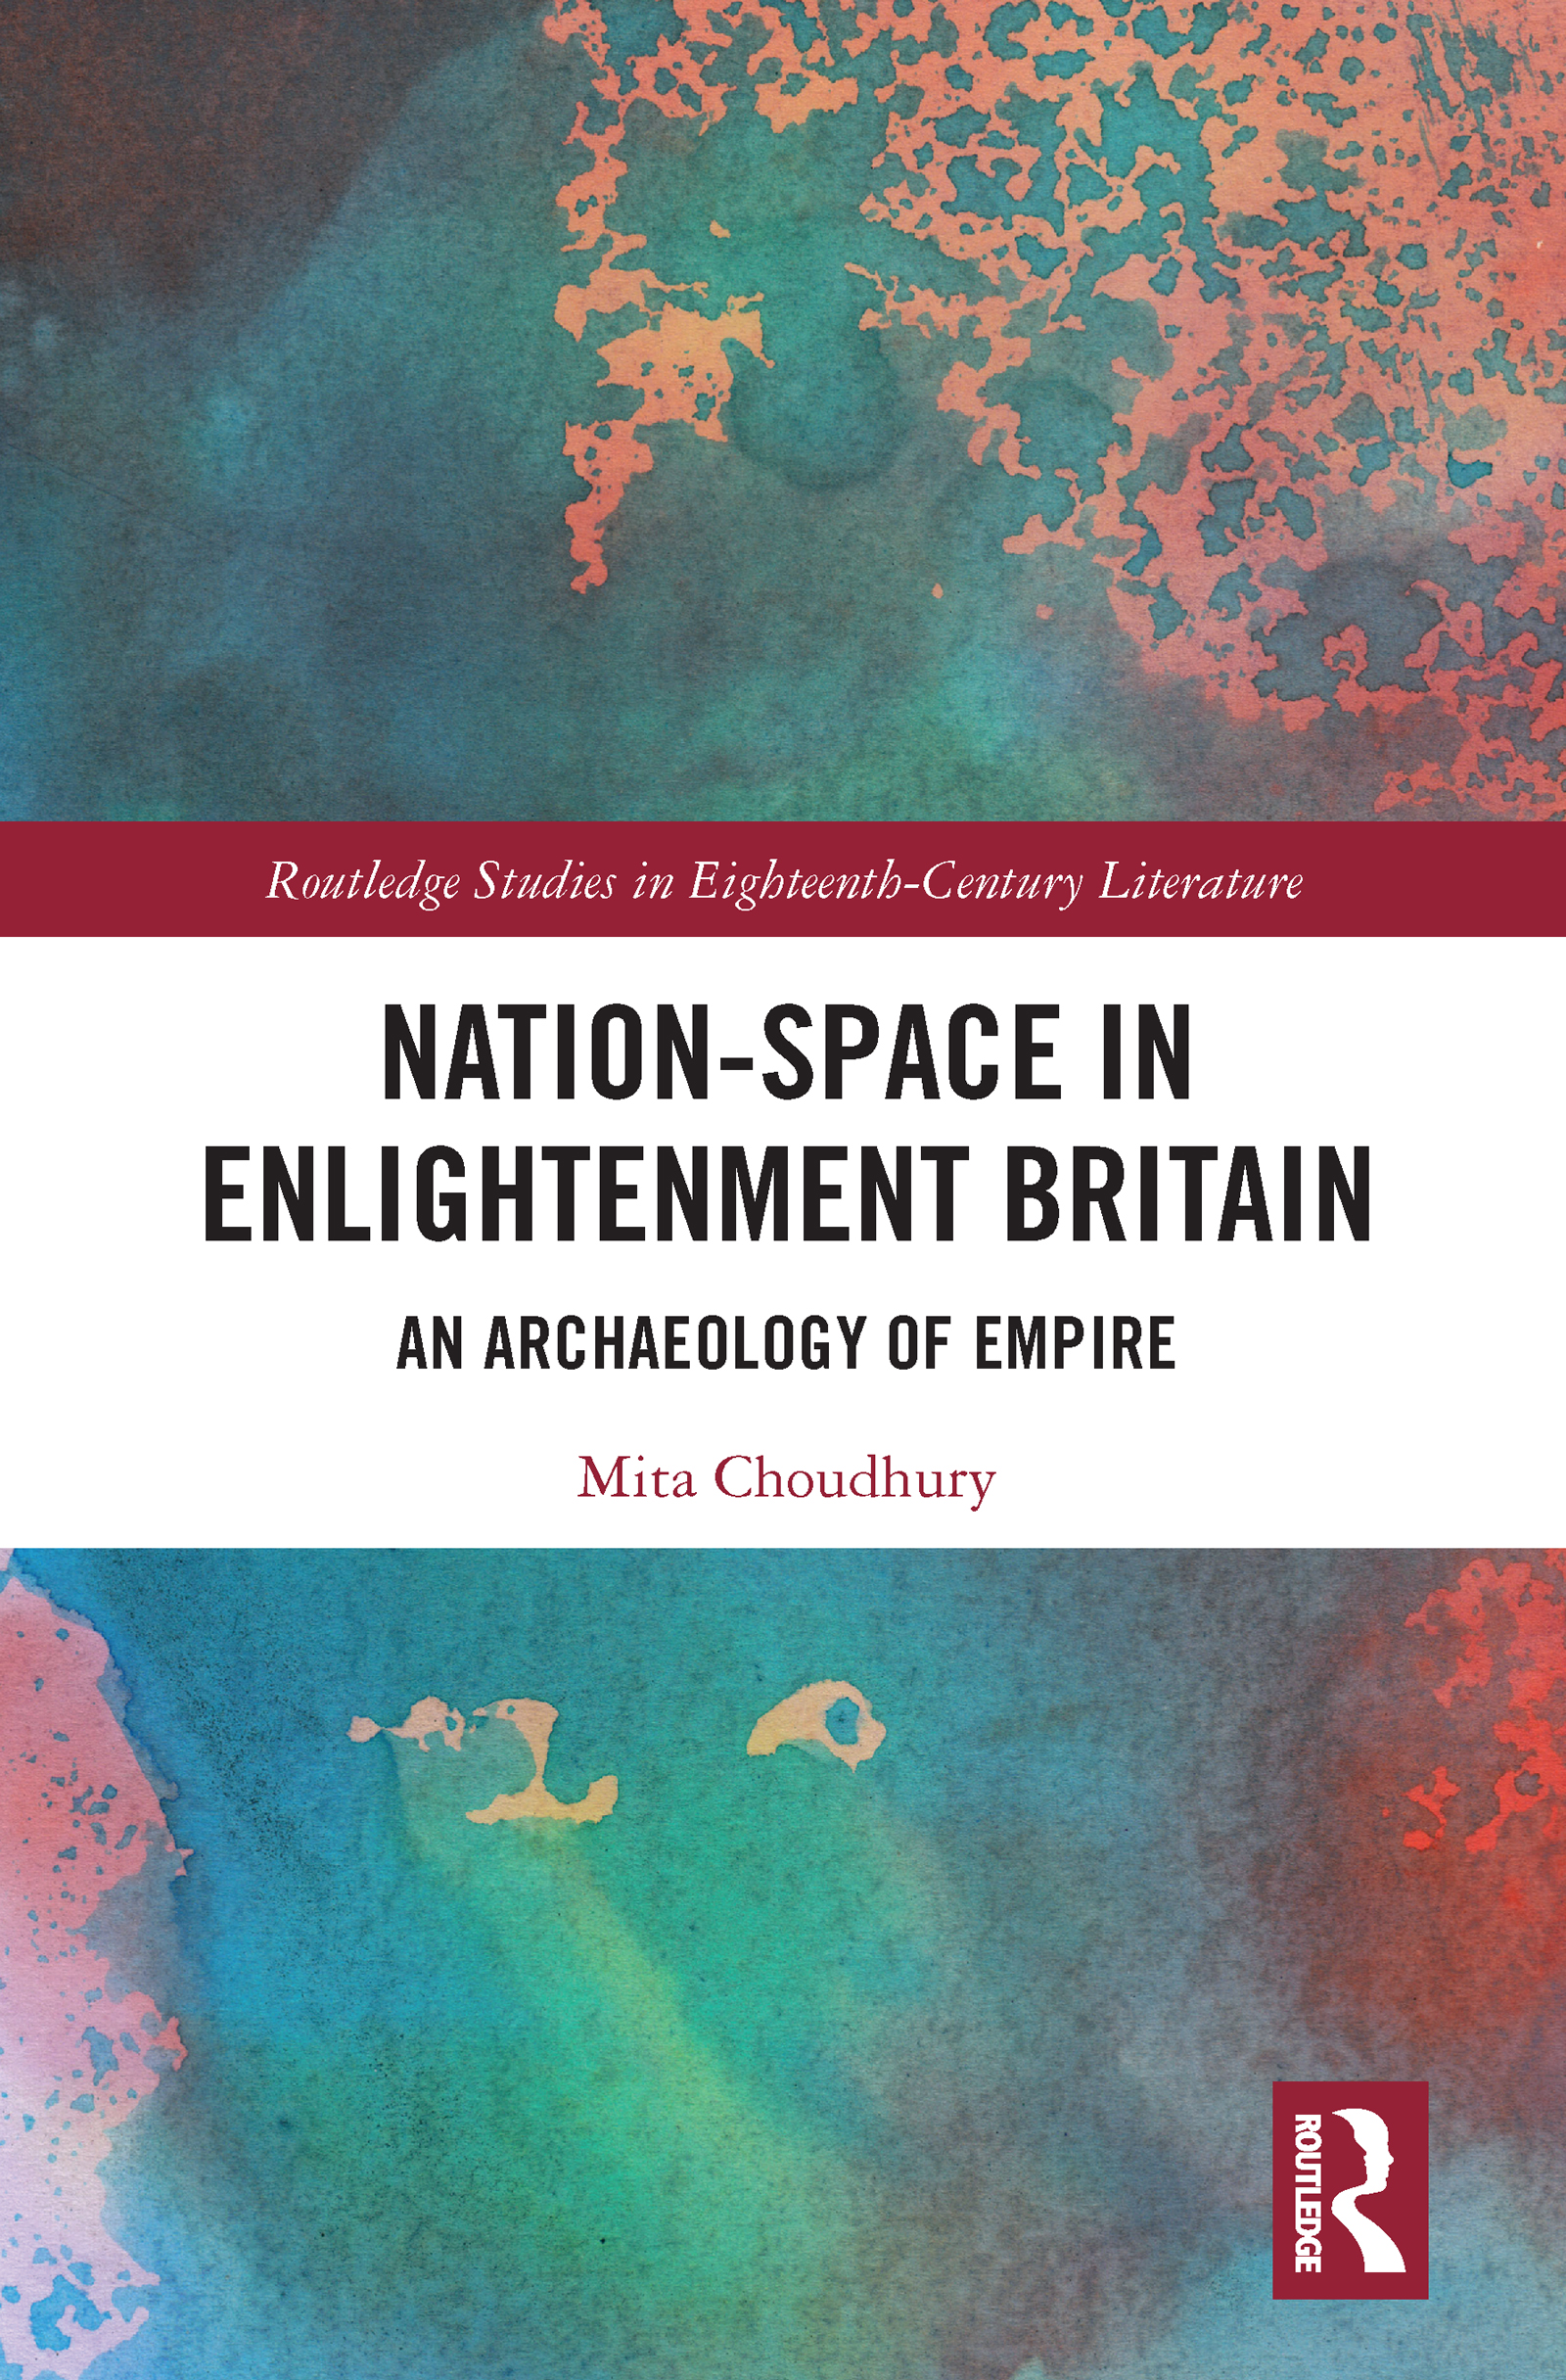 Nation-Space in Enlightenment Britain